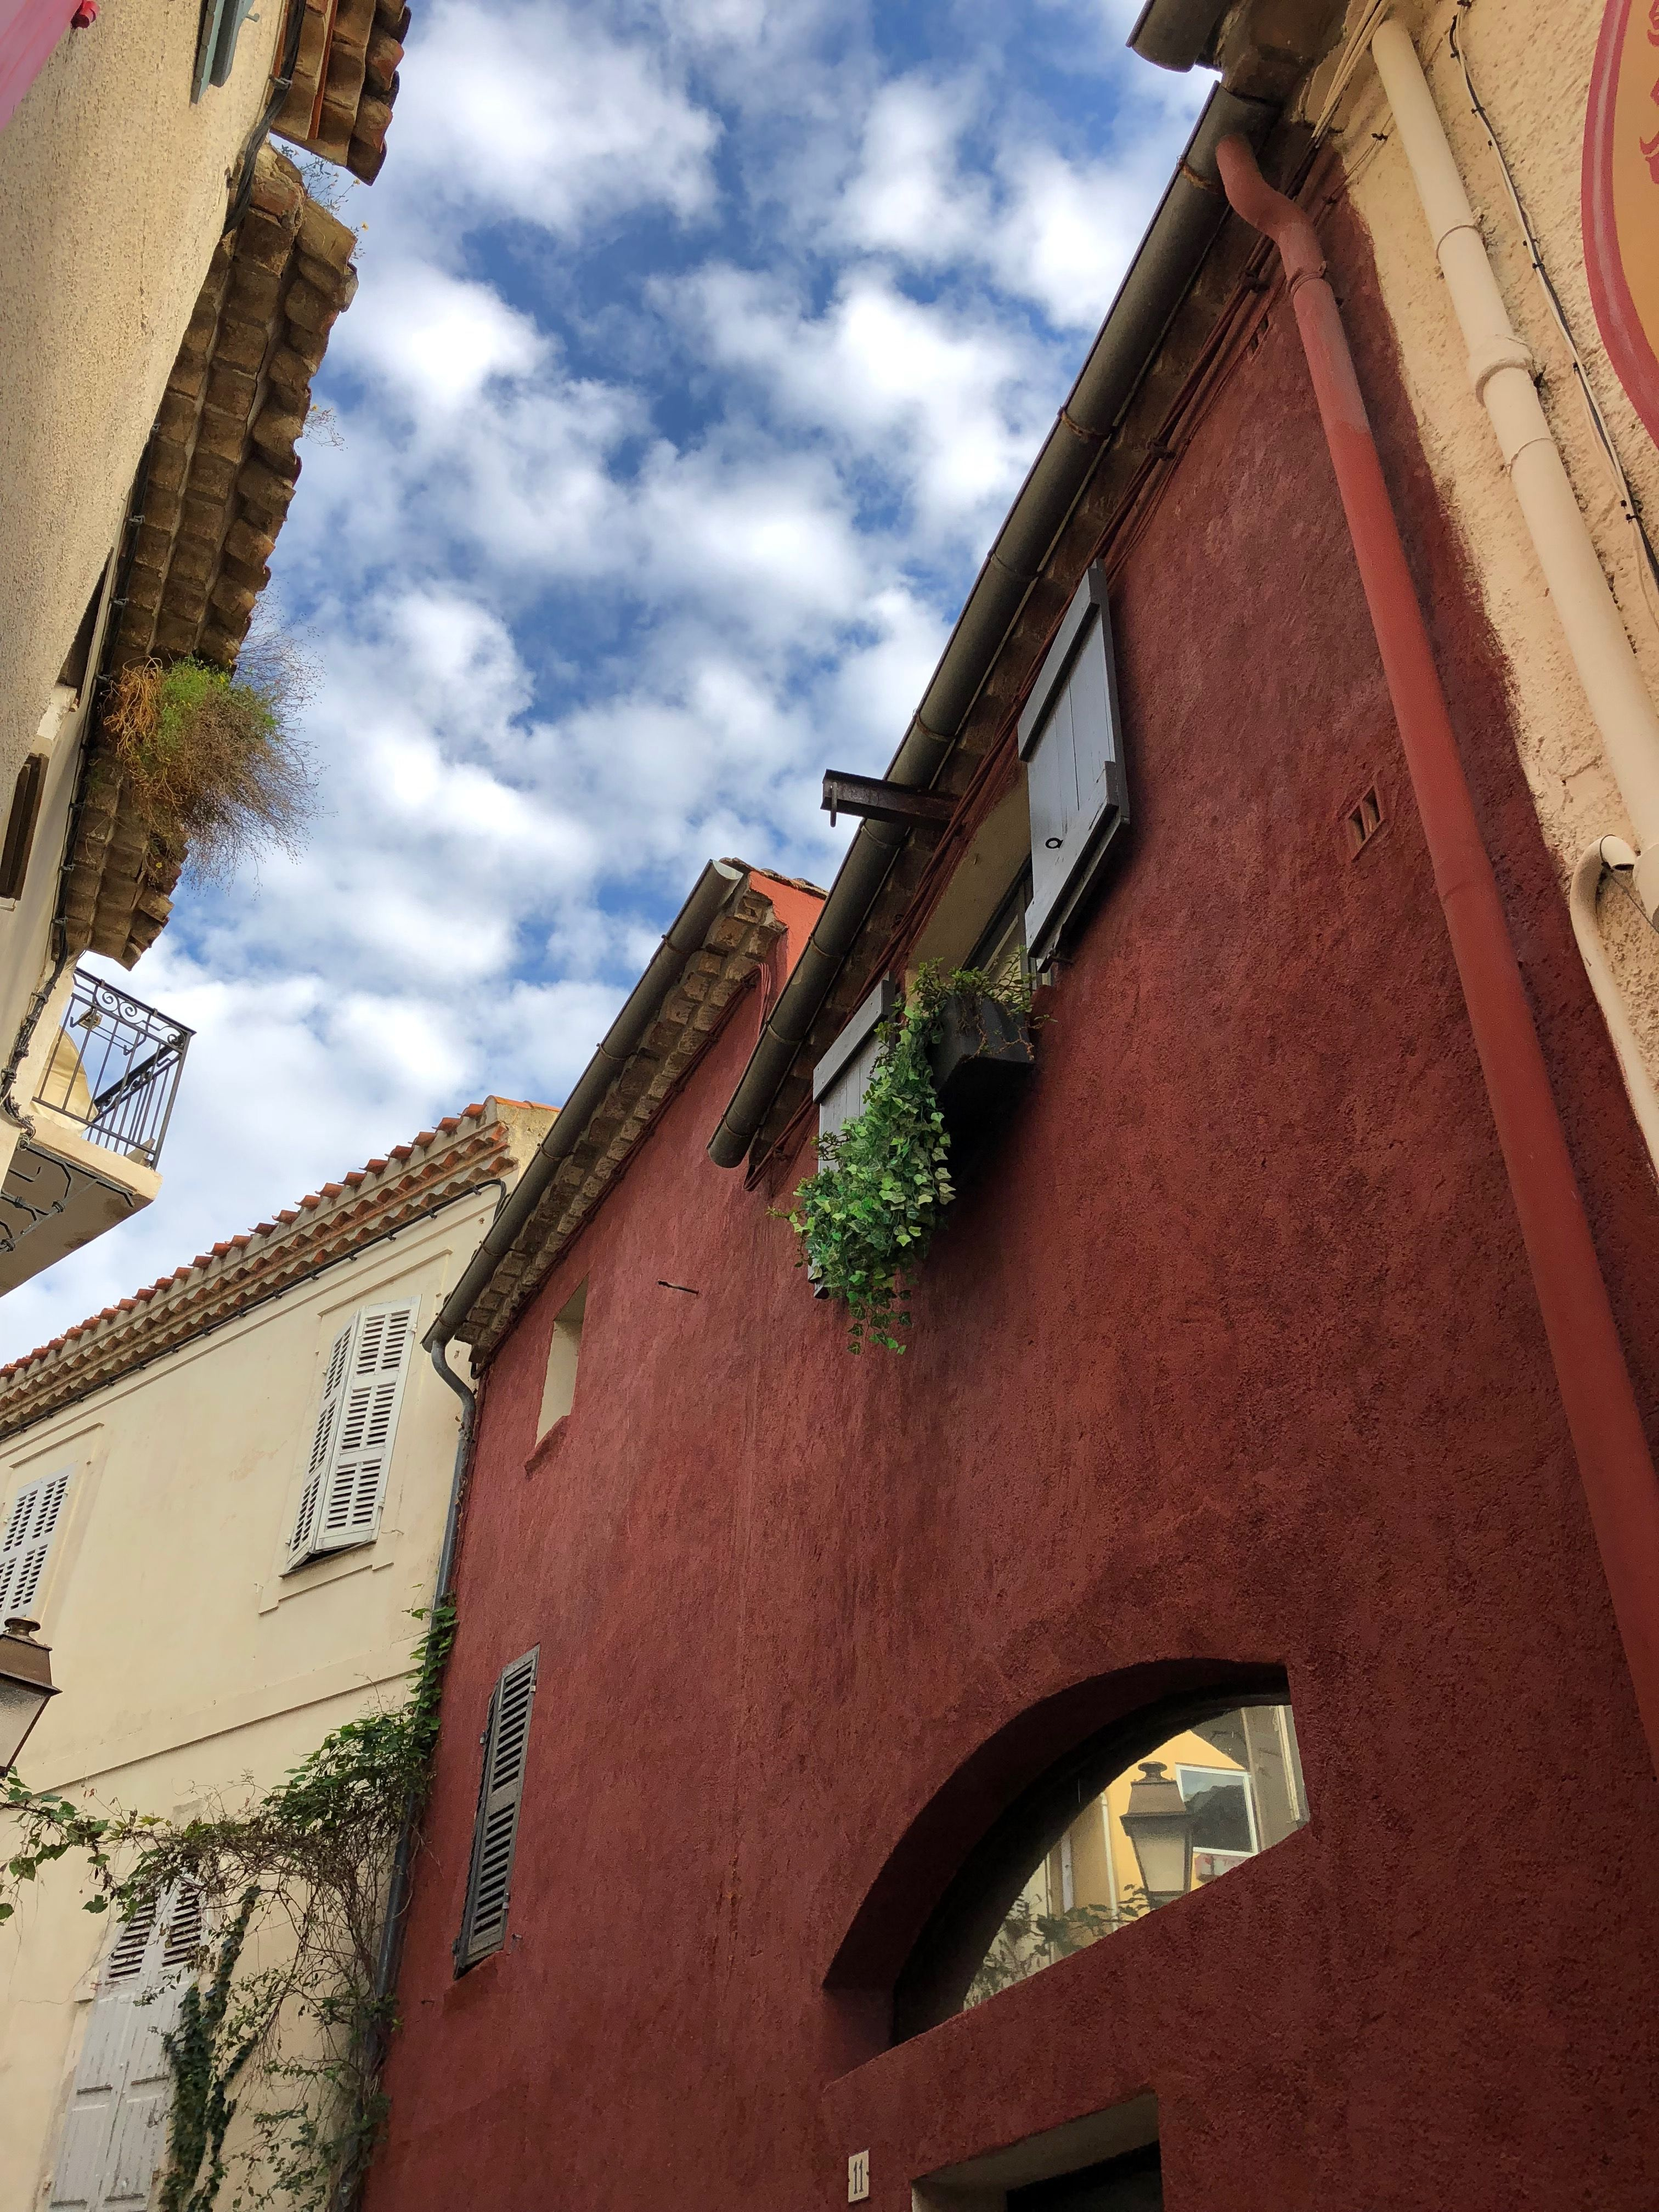 Le Castellet, France Nov.9,2018 France travel, France